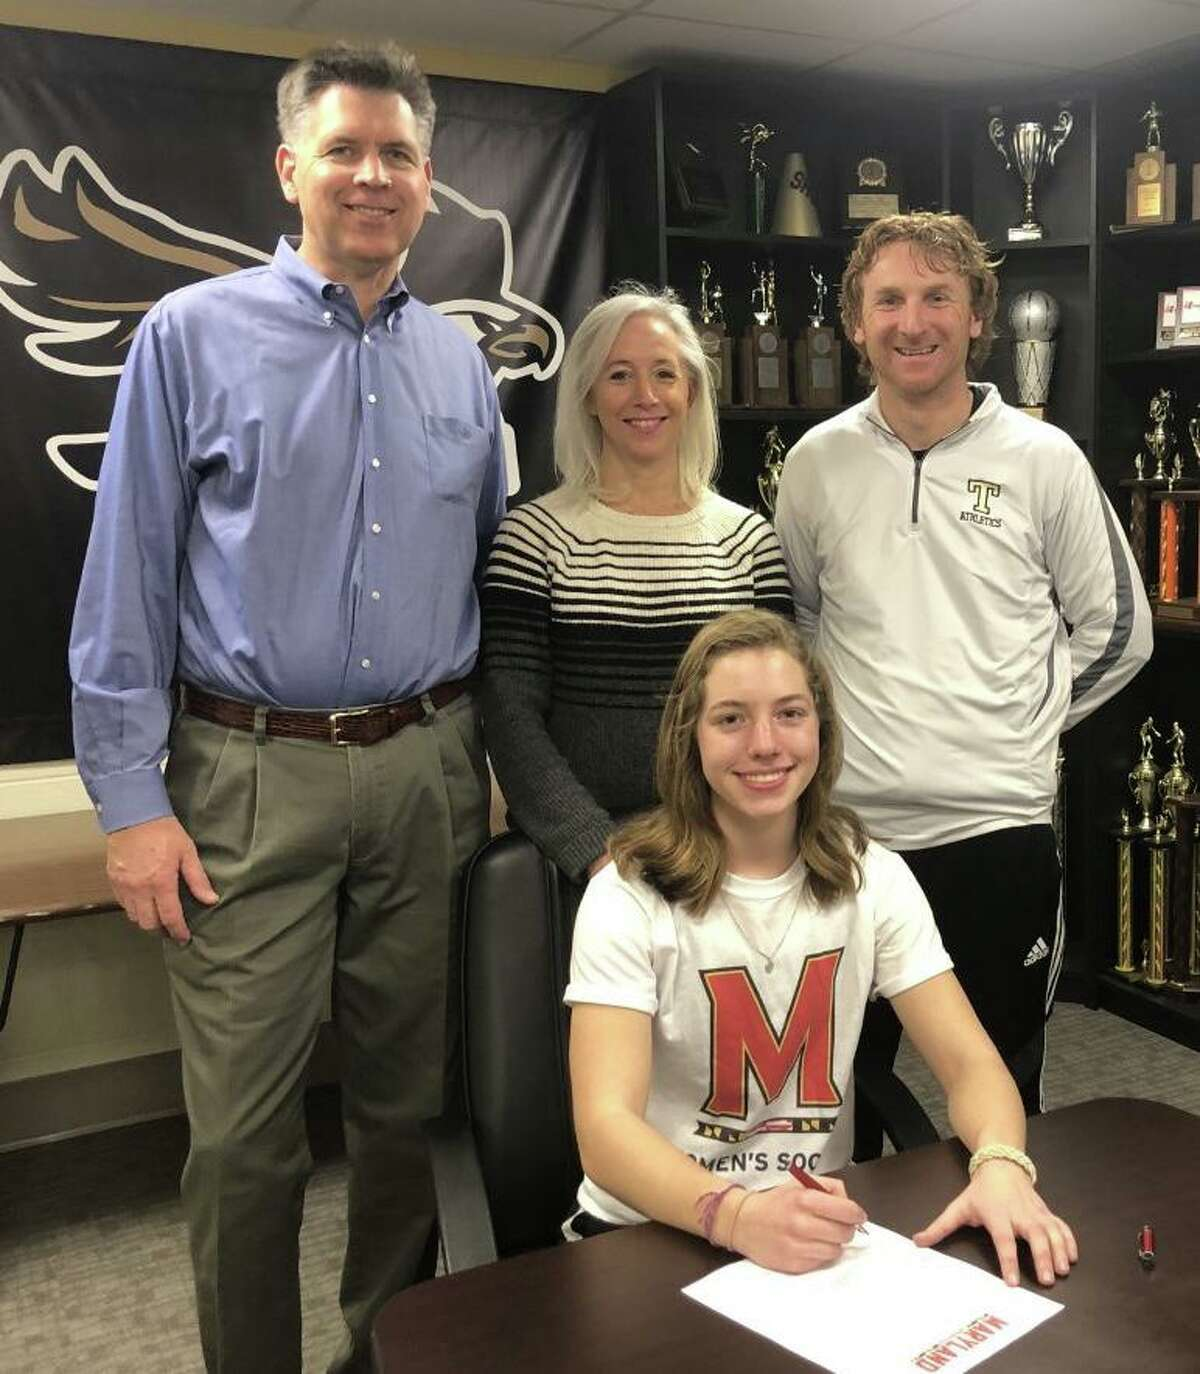 Avery Rice was joined by dad Conway, mom Marybeth and Trumbull head girls' soccer coach Rich Sutherland when she signed her letter of intent to play soccer at Maryland University.